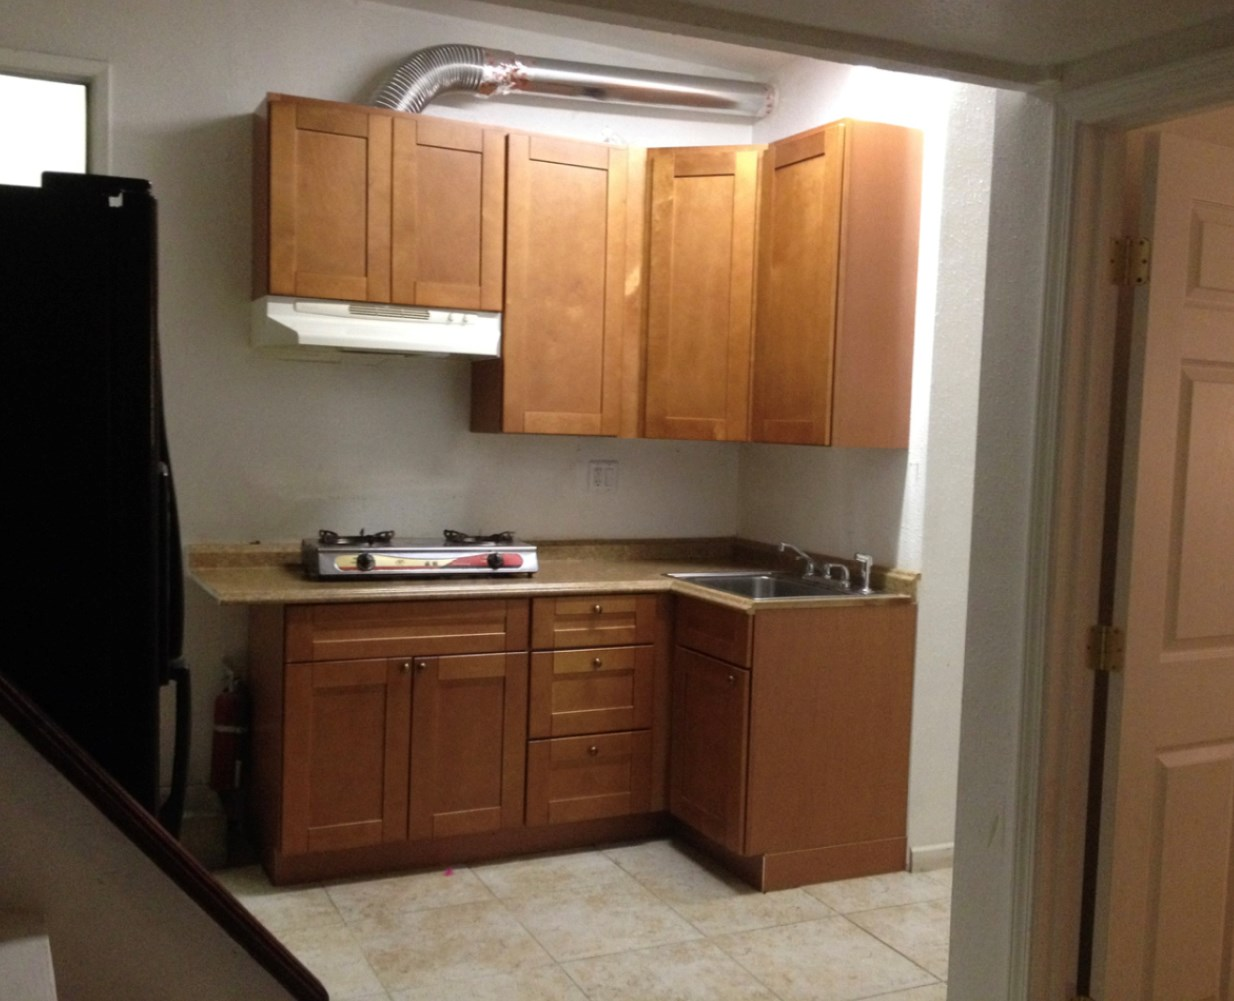 Rooms for Rent San Jose, CA – Apartments, House, Commercial